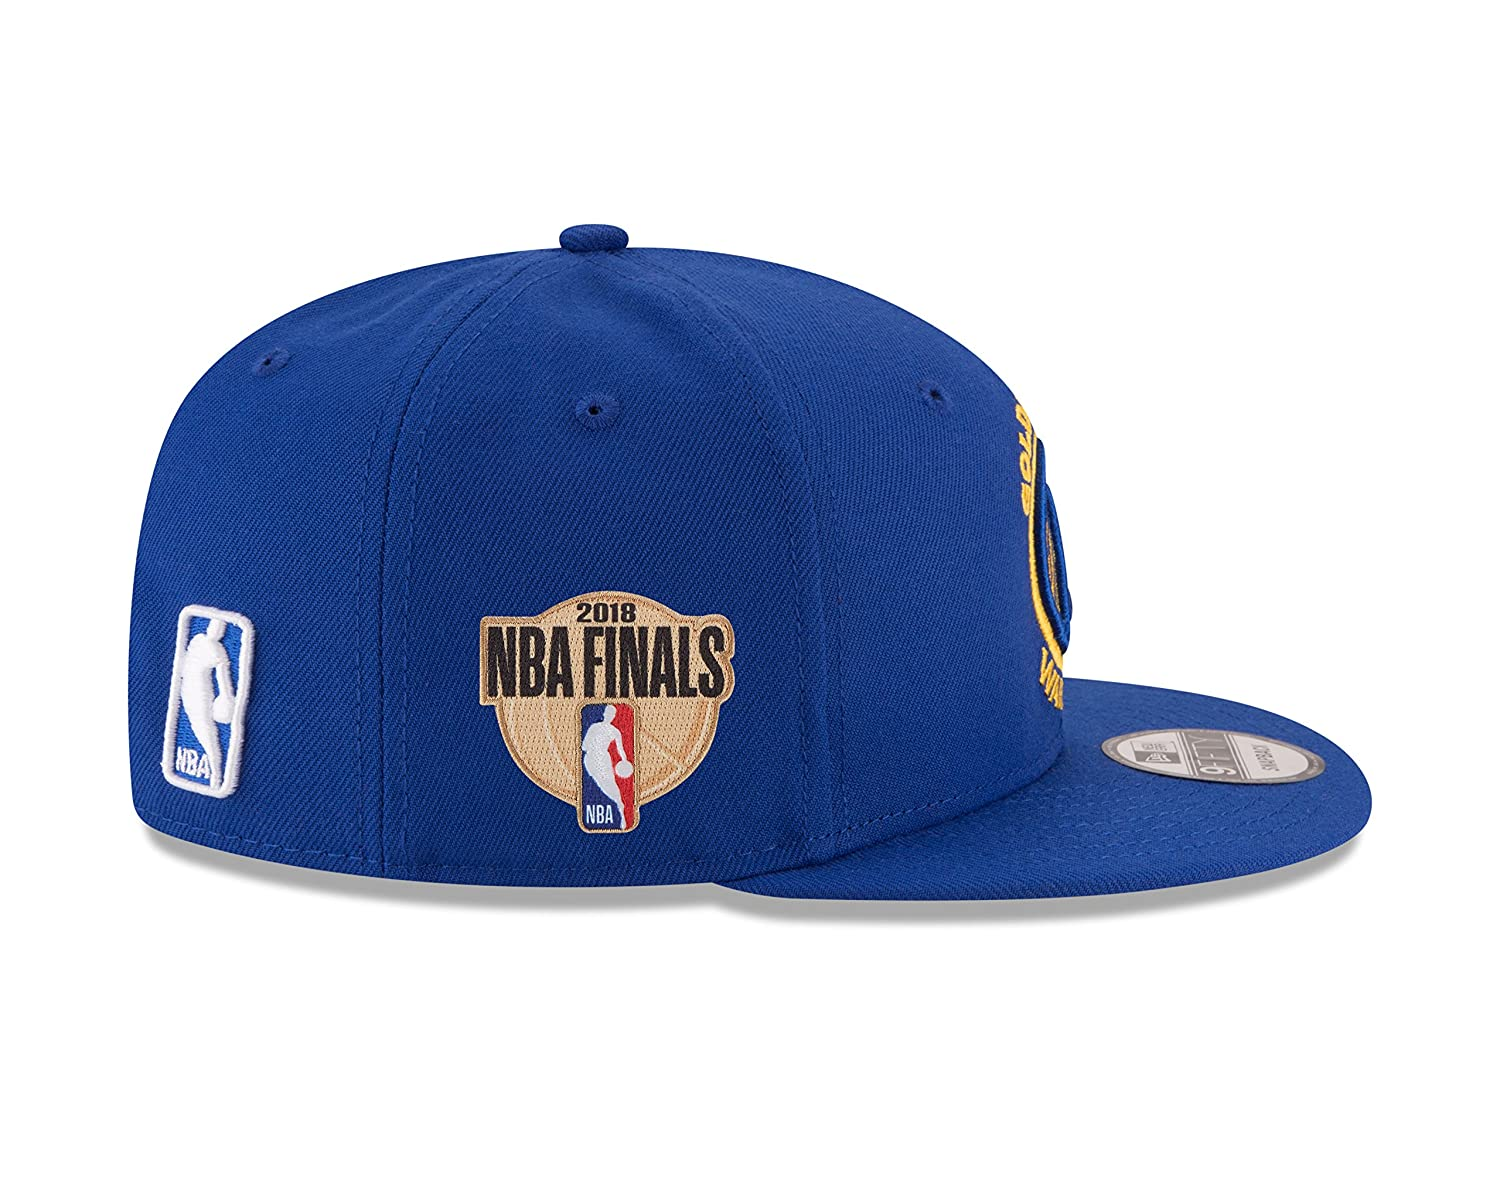 competitive price 1573b fa2cf Amazon.com   New Era Golden State Warriors 2018 Western Conference  Champions NBA FINALS 9FIFTY Snapback Adjustable Hat - Royal   Clothing